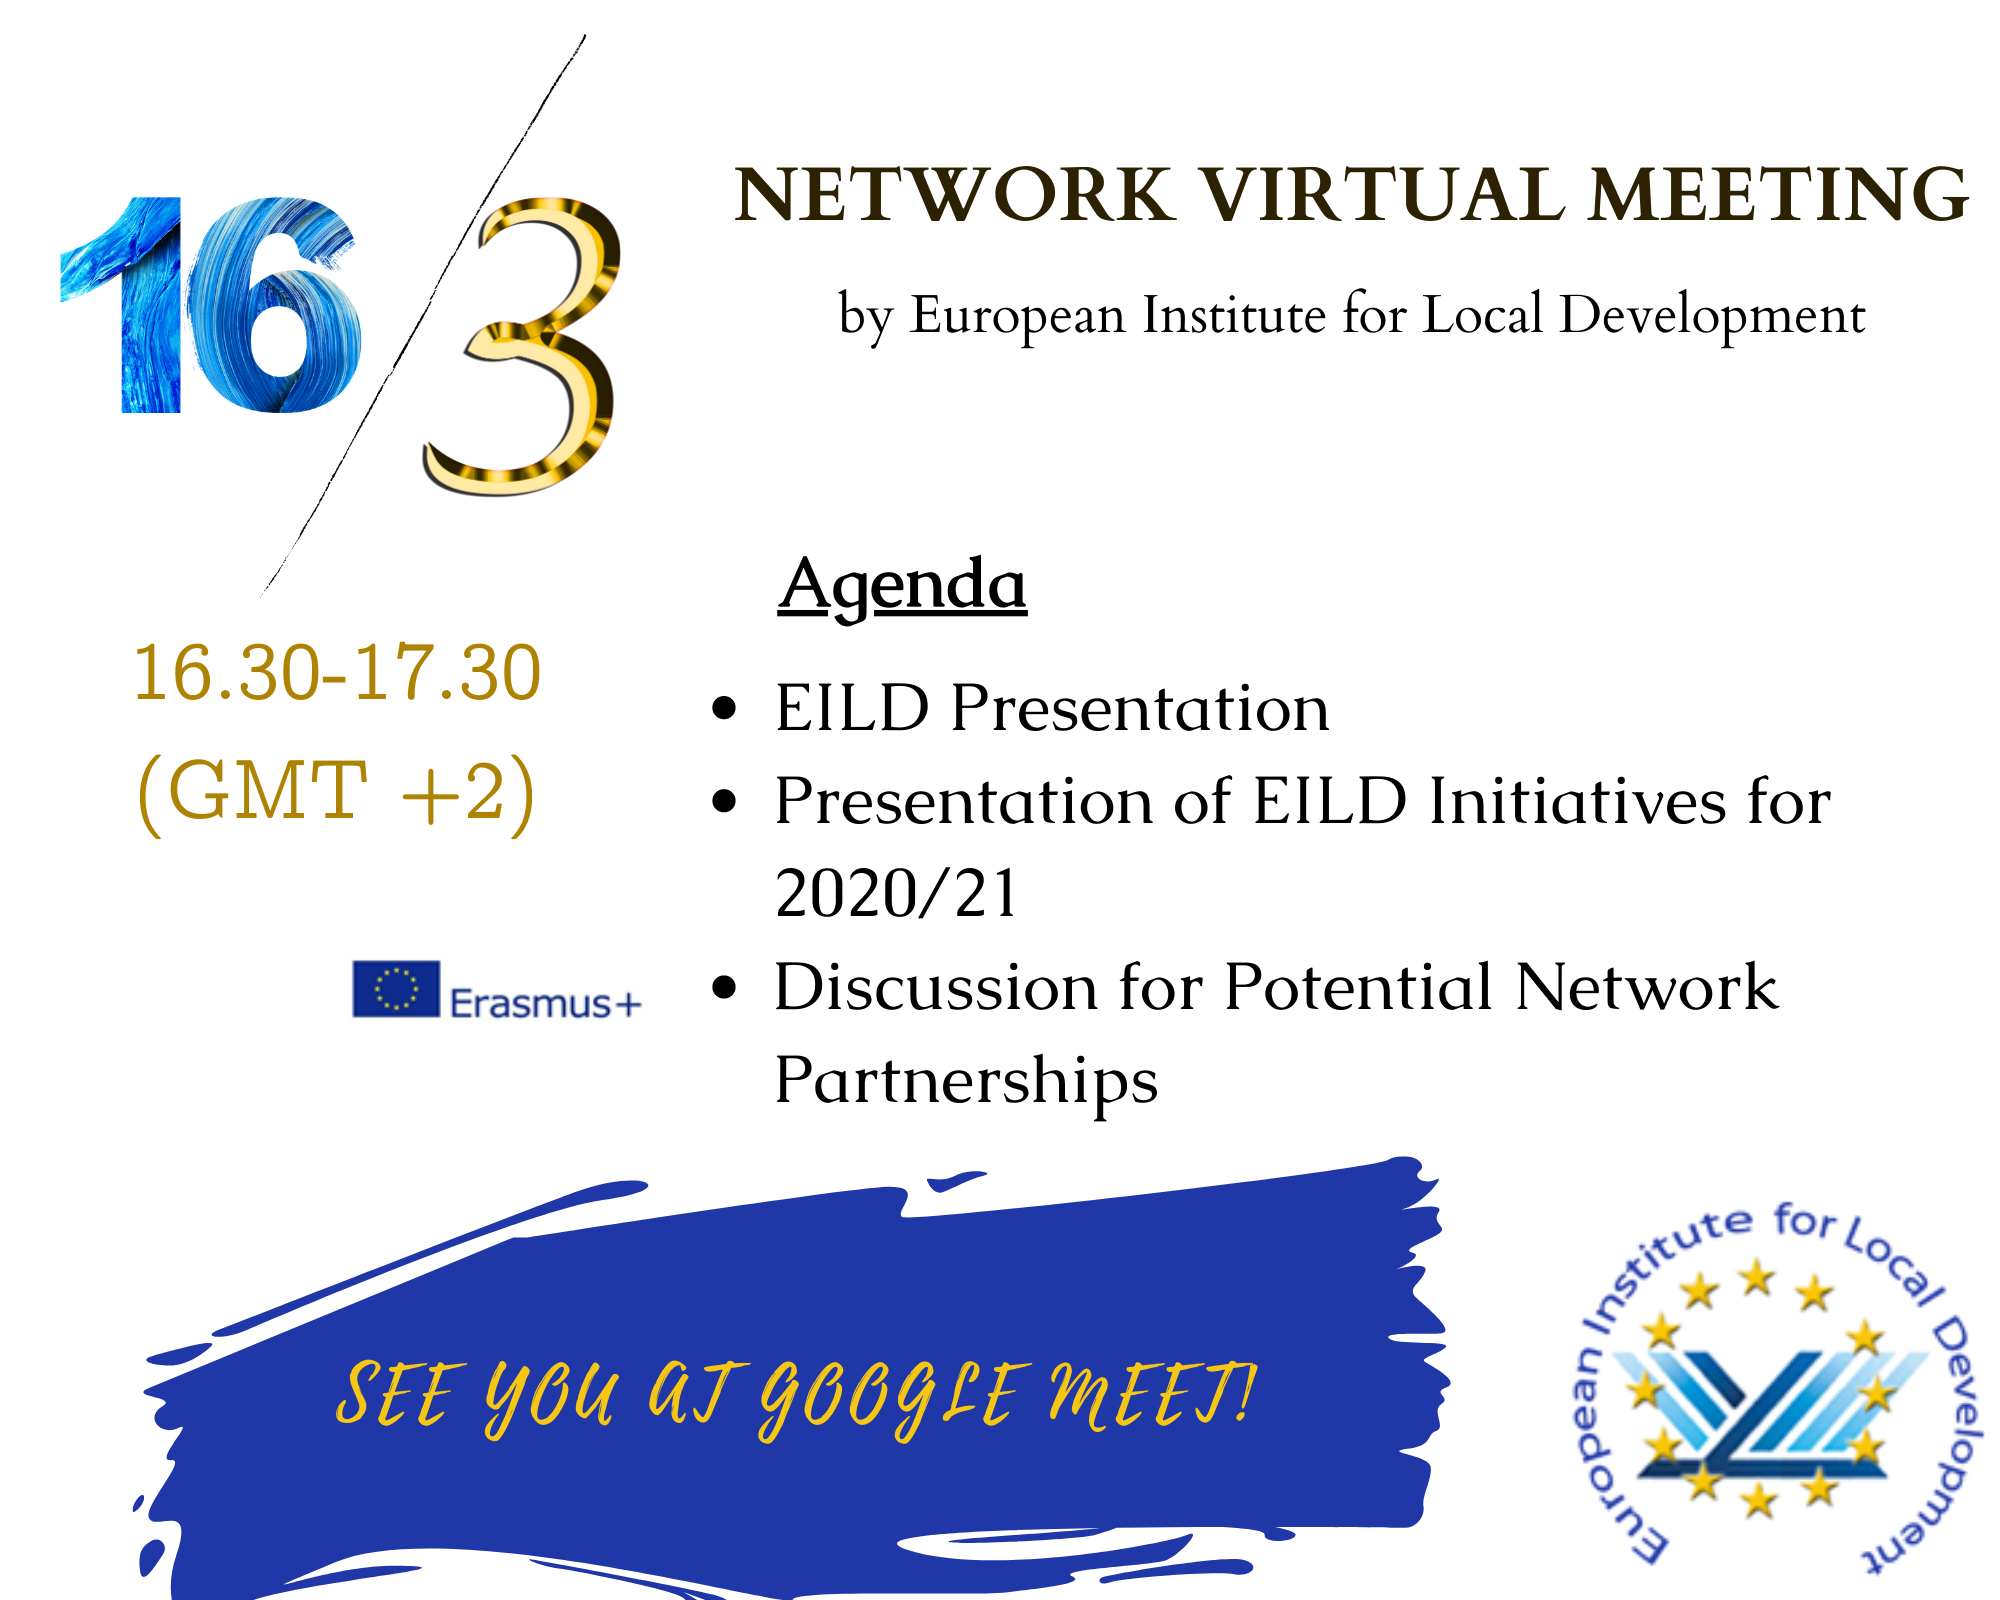 EILD'S NETWORK VIRTUAL MEETING ON March 16